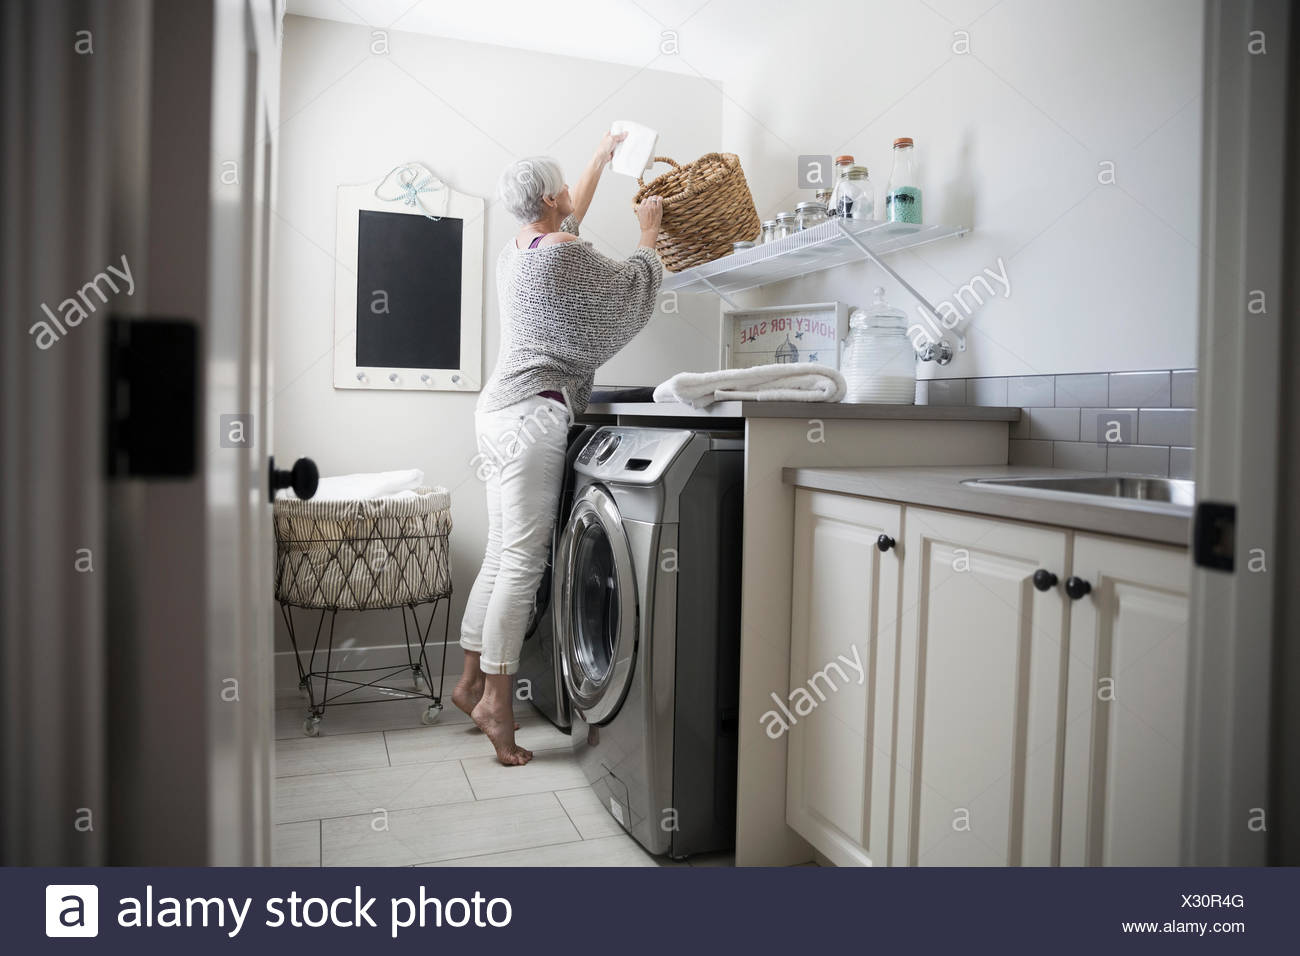 Woman reaching for basket in laundry room - Stock Image